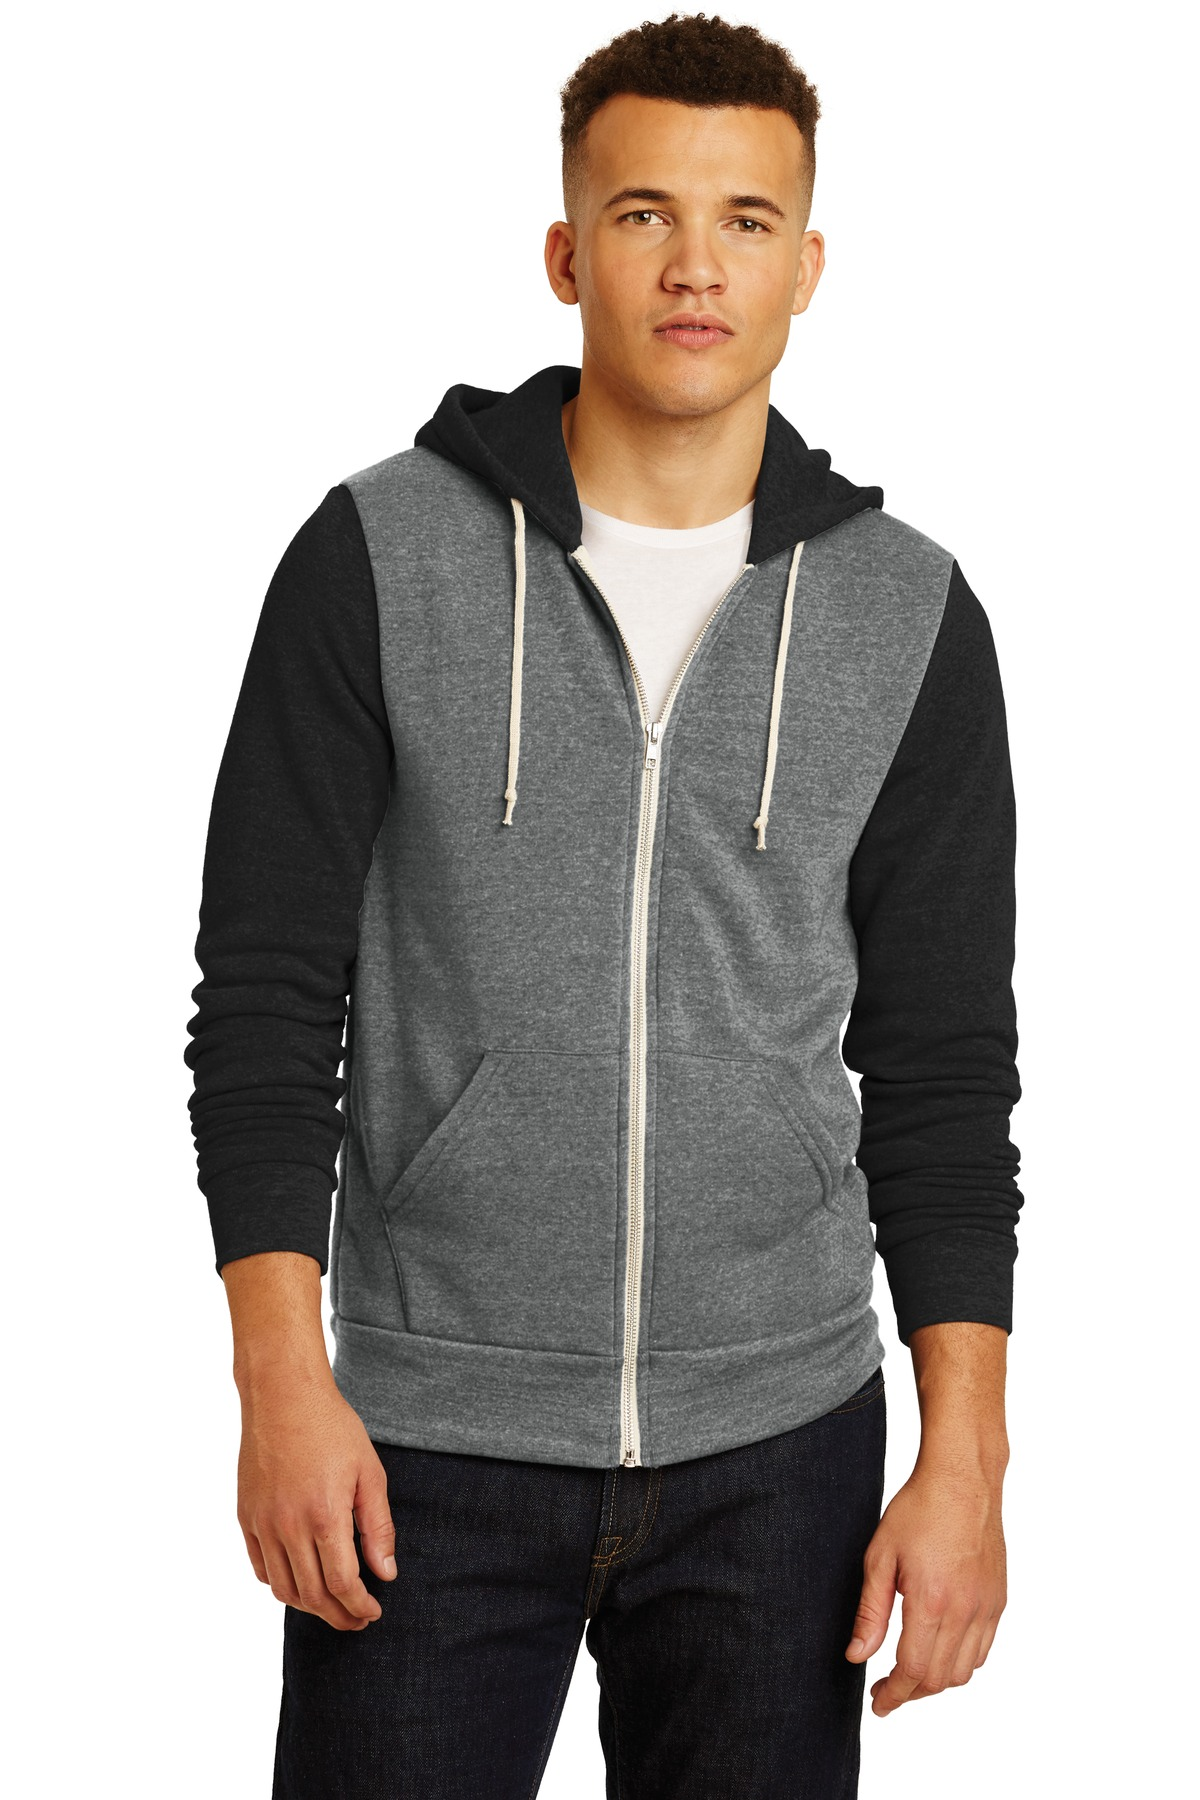 Alternative Colorblock Rocky Eco ™ -Fleece Zip Hoodie. AA32023 - Eco Grey/ Eco True Black